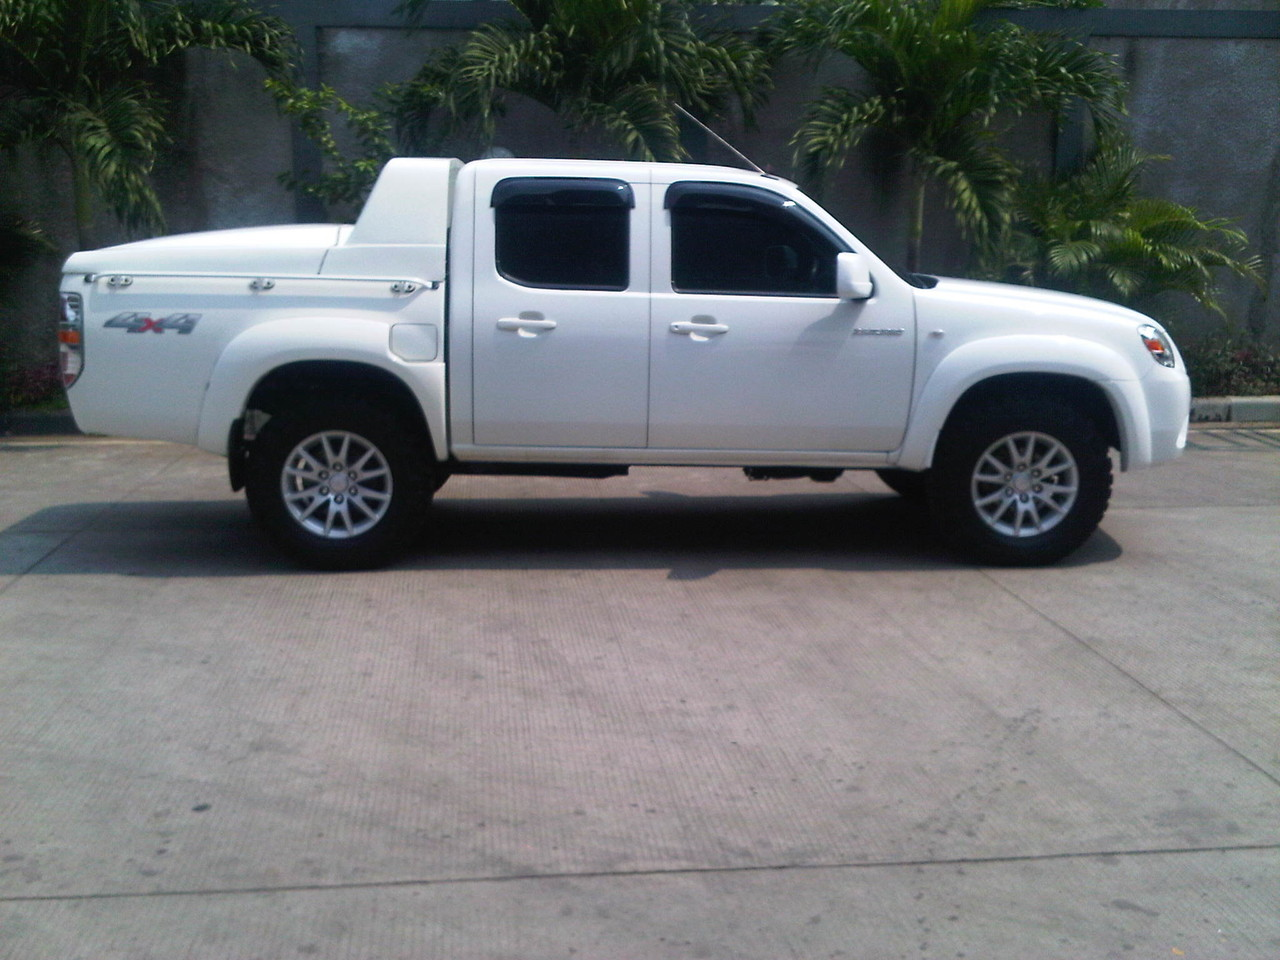 ford ranger full modifikasi with 348219 Fs Mazda Bt 50 Kembaran Ford Ranger Double Cabin Full Variasi Macho Dan Gagah on Page4 moreover Sticker Pick Up Full Body moreover 58483 WTS 4x4 Bullbar likewise Page4 in addition Ford Mustang From Need For Speed Headed To Barrett Jackson.